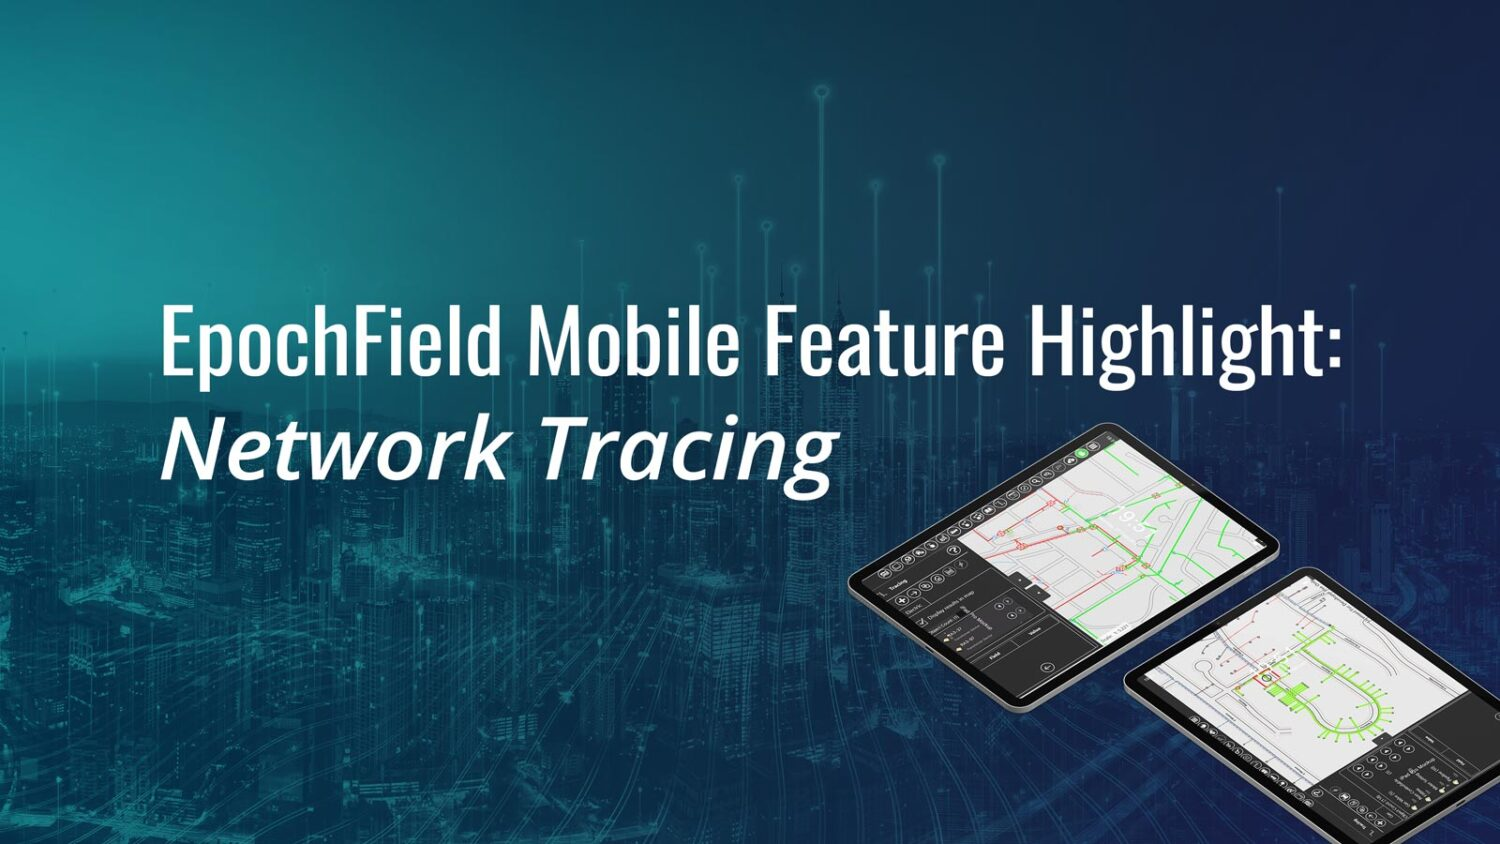 Network Tracing with EpochField Mobile